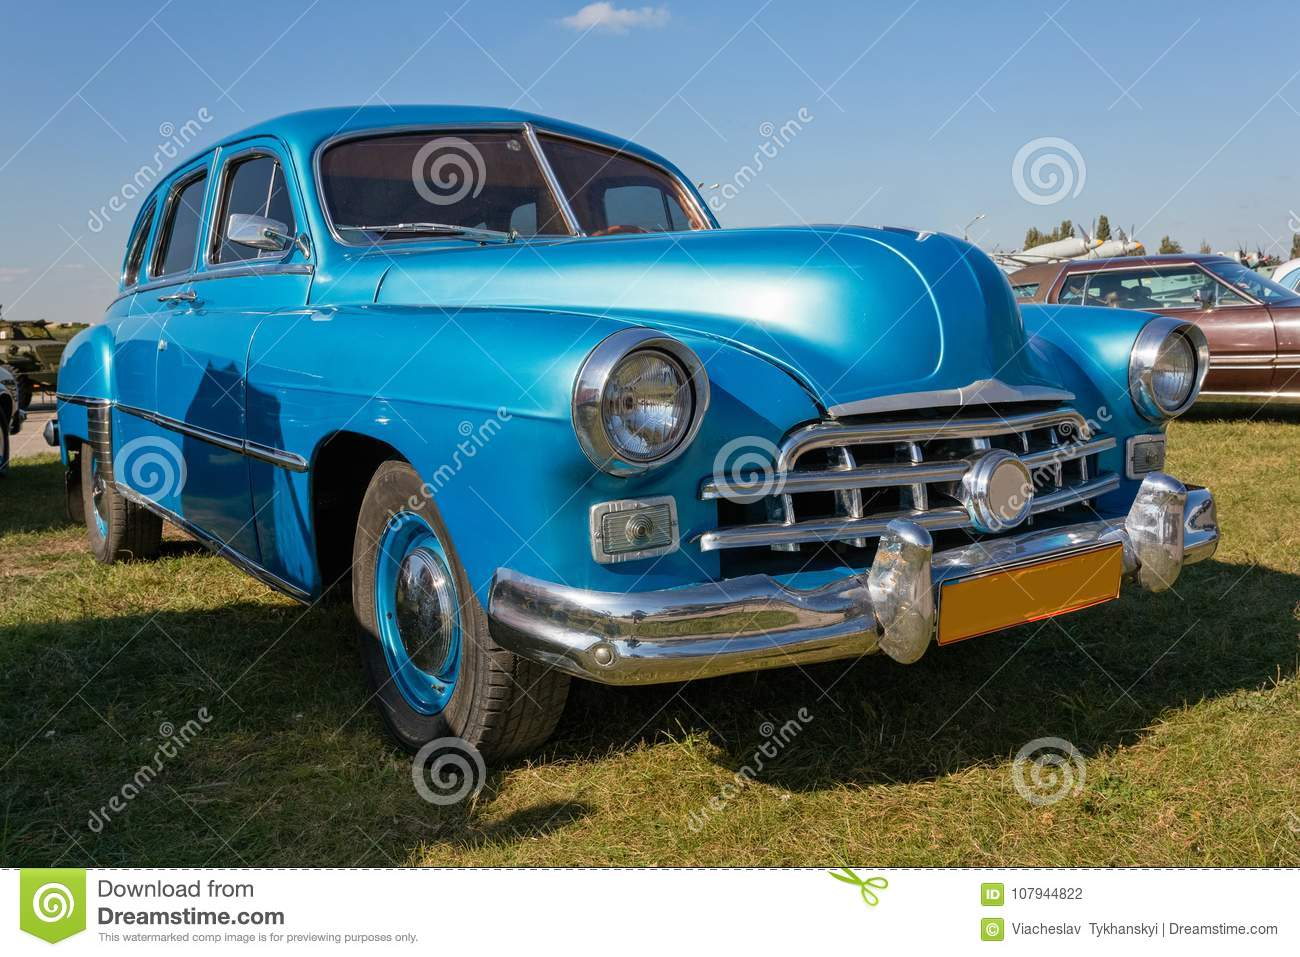 Vintage Car Staying At Sunset. Stock Photo - Image of blue, journey ...